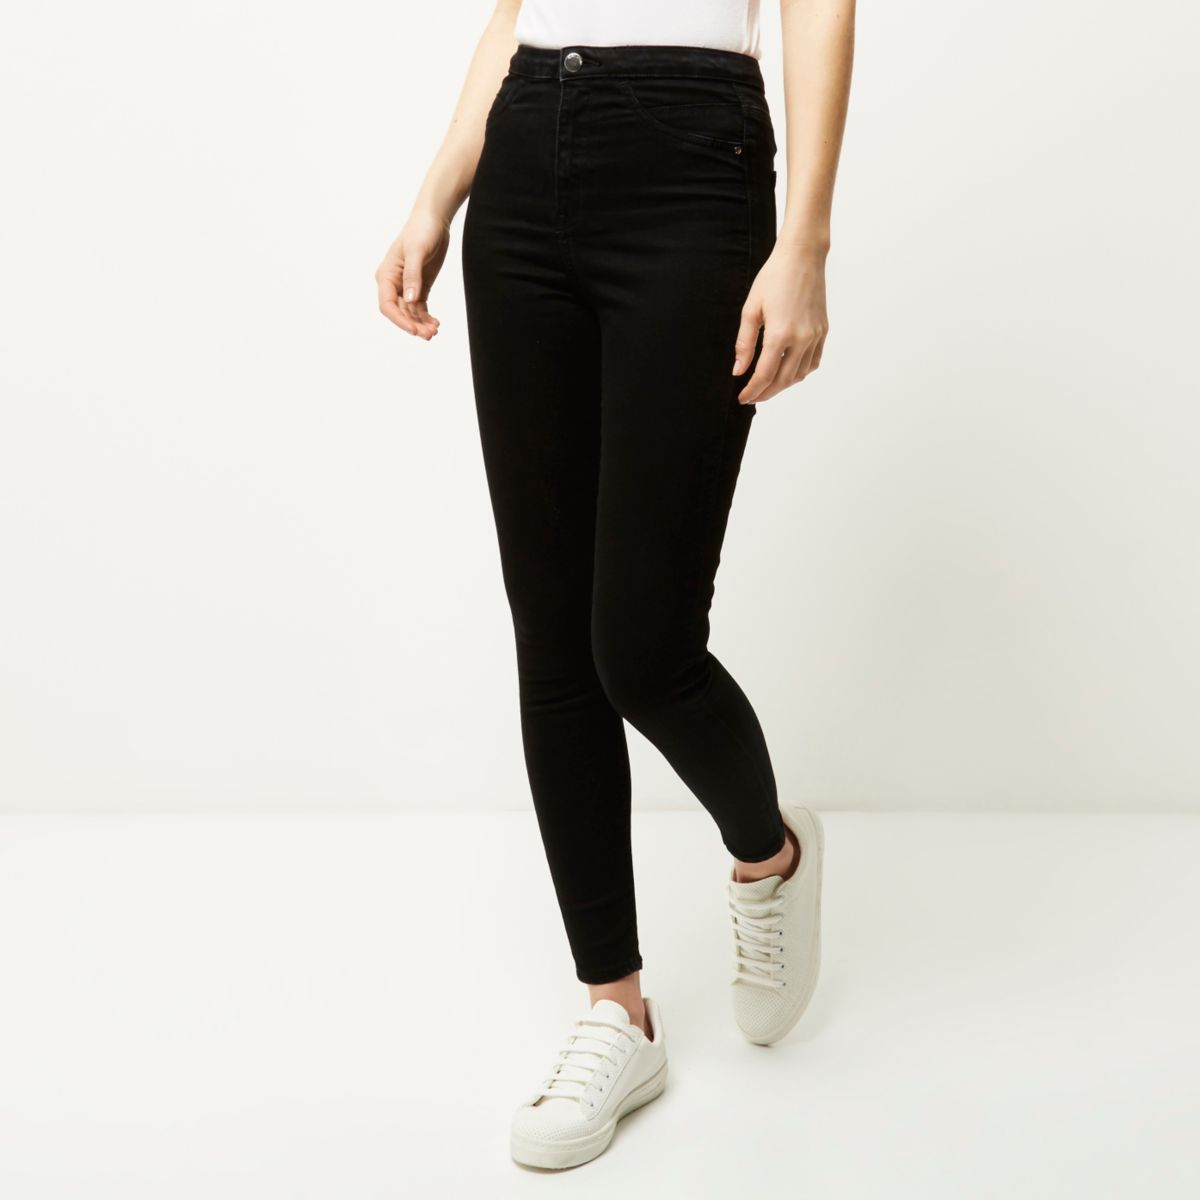 Find perfect-fitting denim when you shop Ann Taylor's jeans for women. Discover a wide selection of jeans in curvy and modern fits, including high-waisted jeans, skinny jeans, flare jeans, wide-leg jeans, crop jeans & more. Curvy All Day Skinny Jeans in Black.